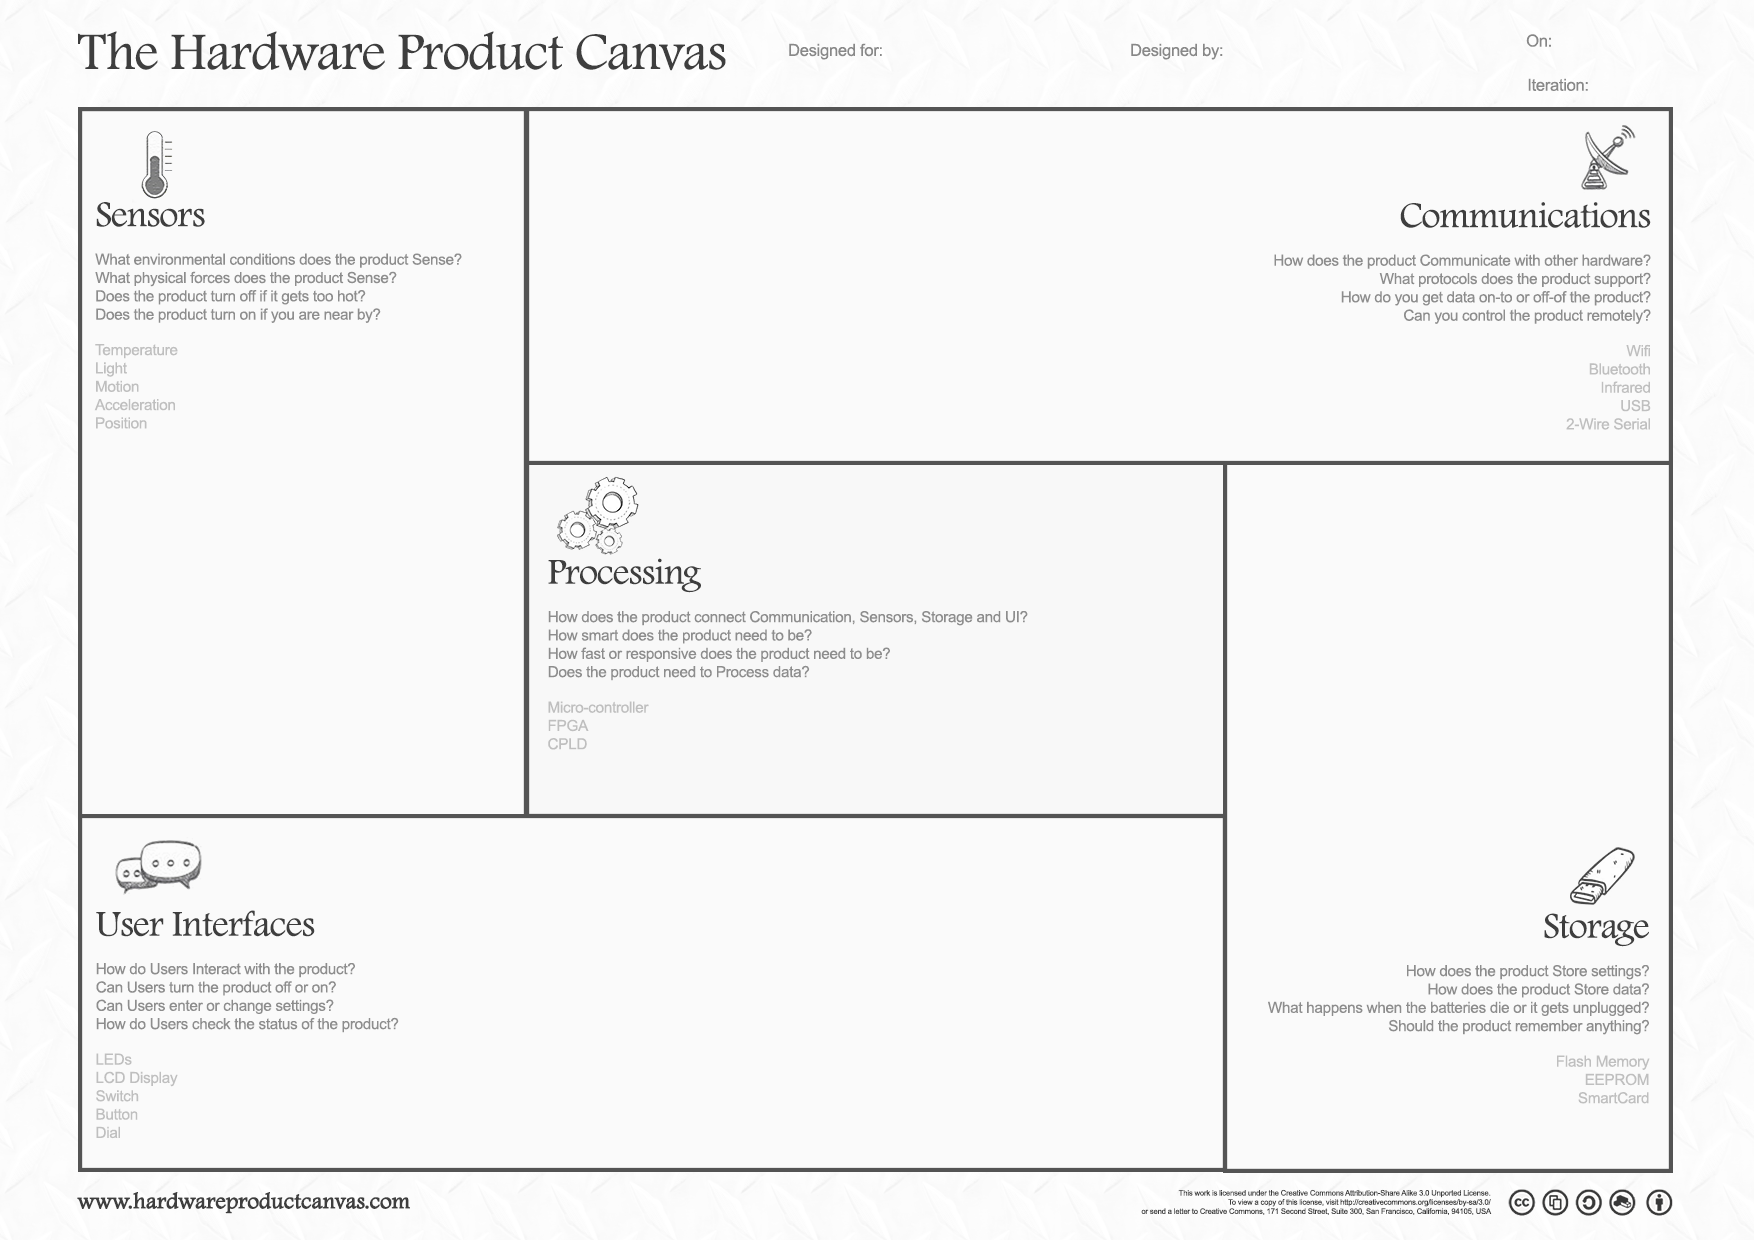 Hardware Product Canvas A Template For Your Next Hardware Project